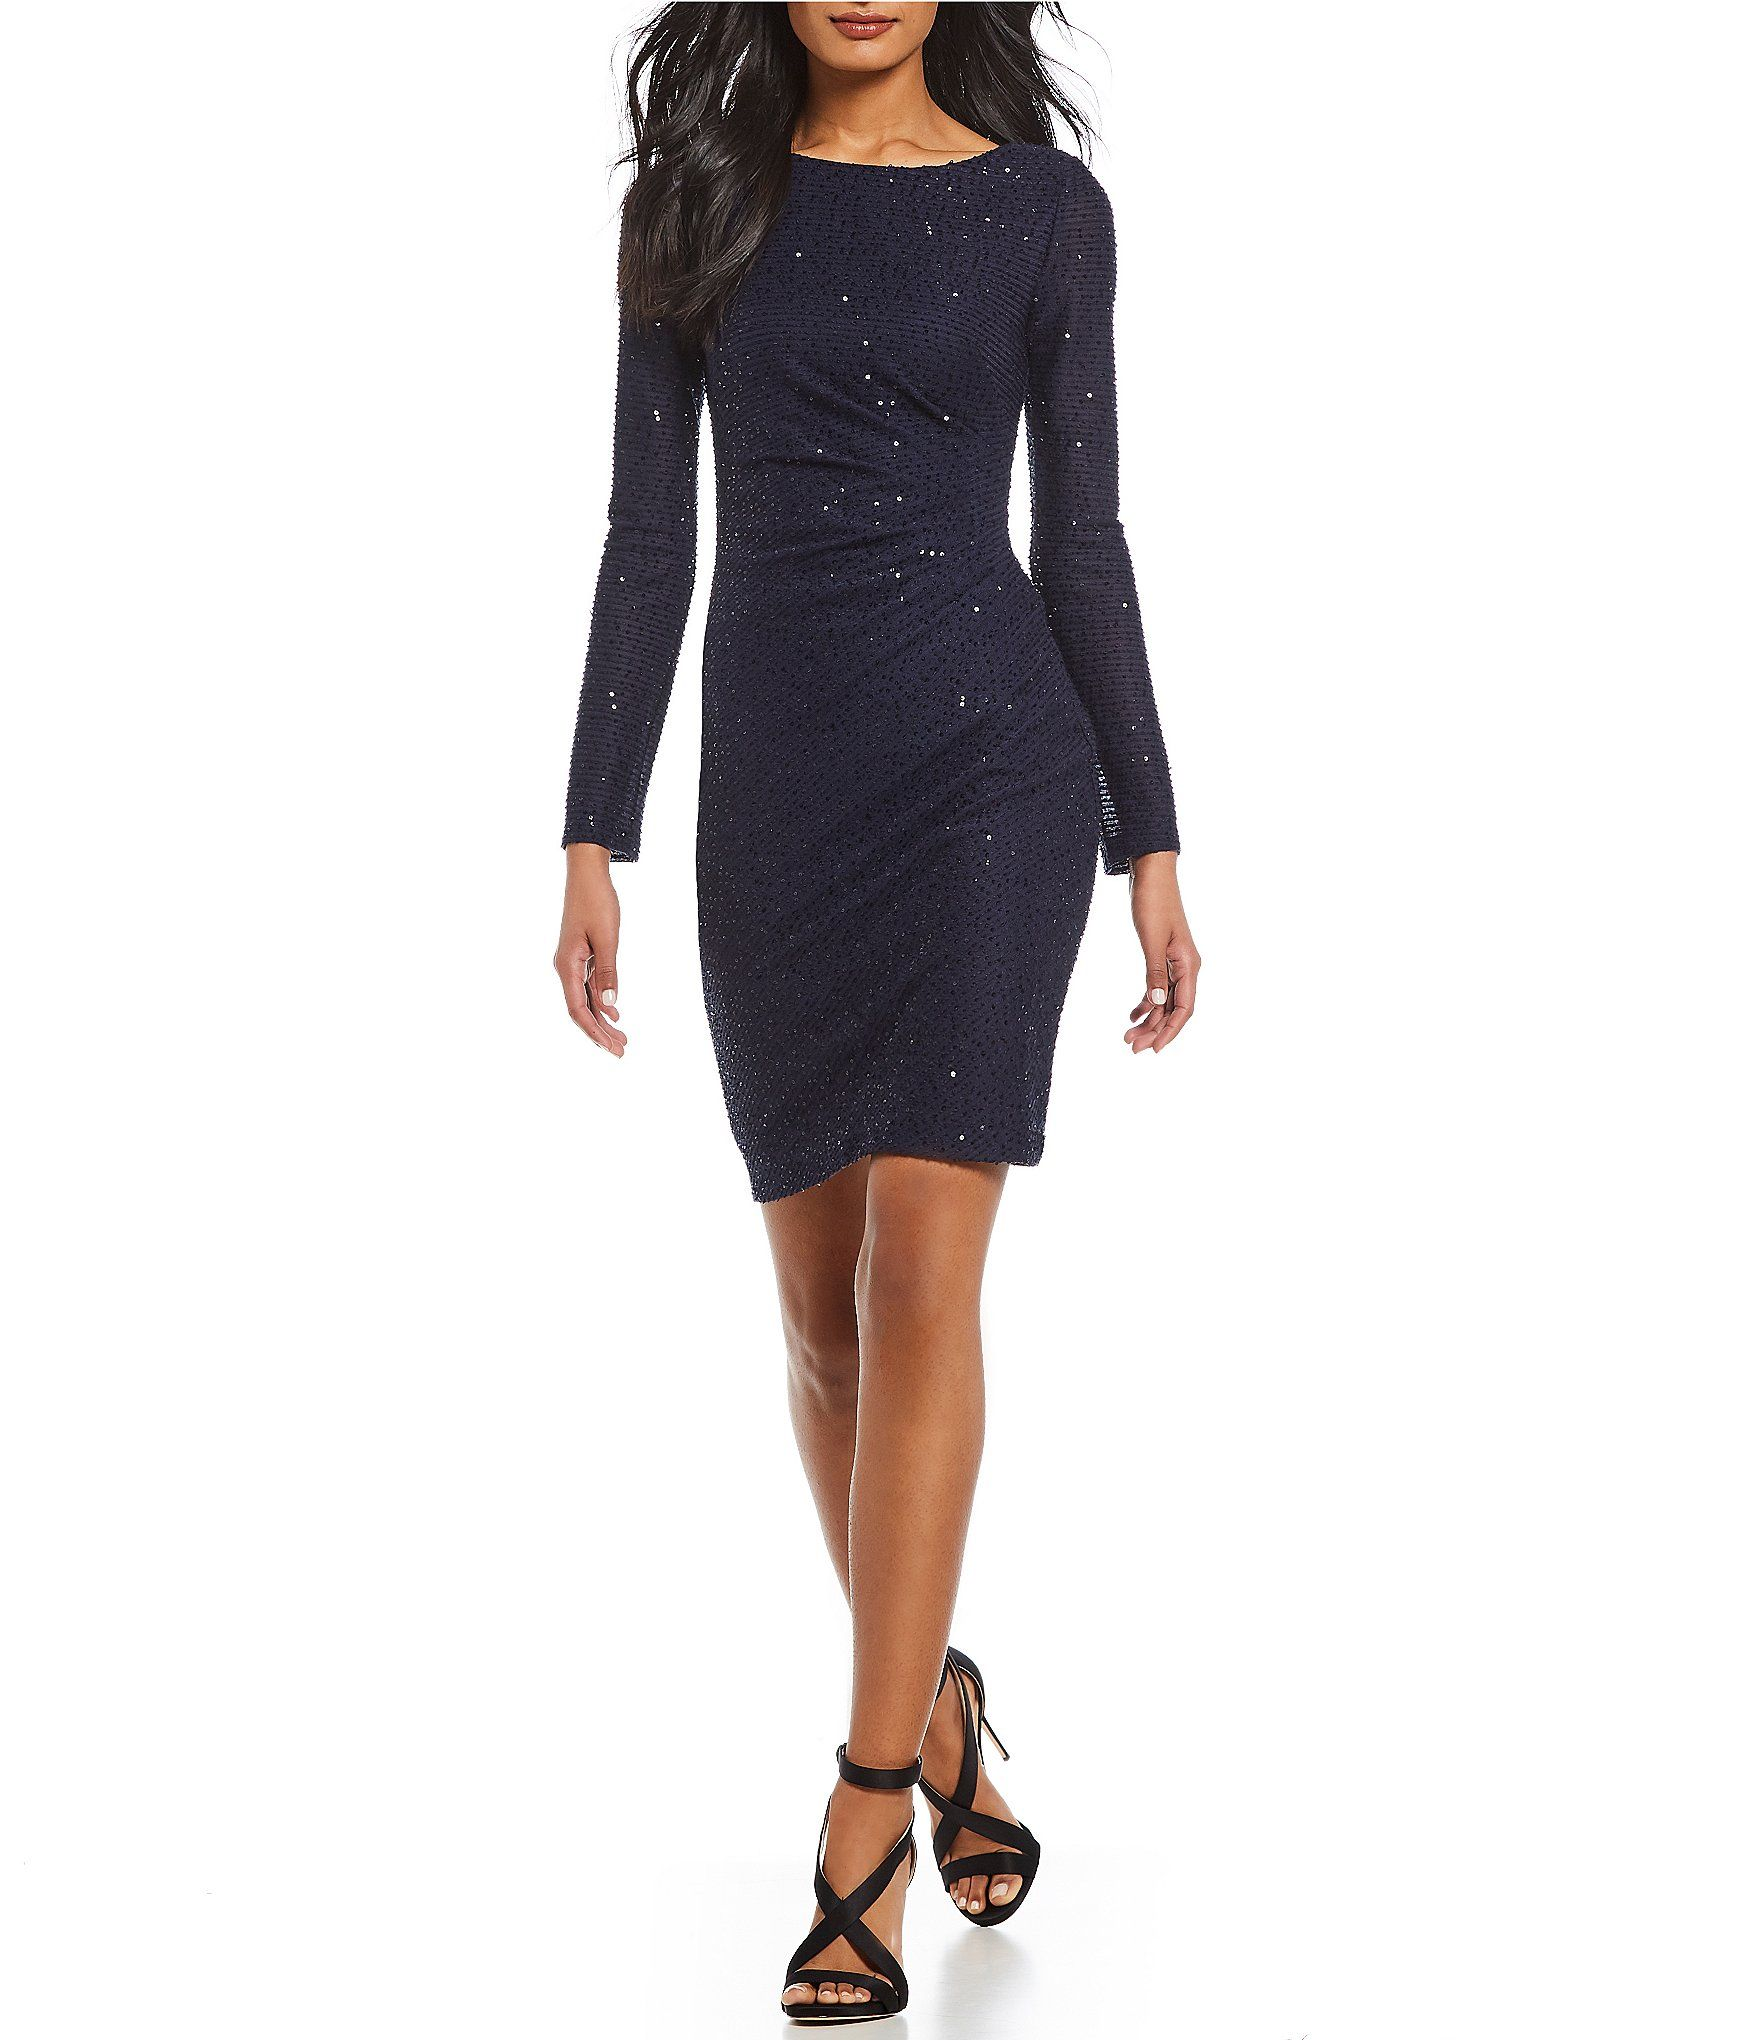 Shop For Vince Camuto Sequin Knit Ruched Sheath Dress At Dillards Com Visit Dillards Com To Find Clothing Accessories Sho Dresses Sheath Dress Bodycon Dress [ 2040 x 1760 Pixel ]